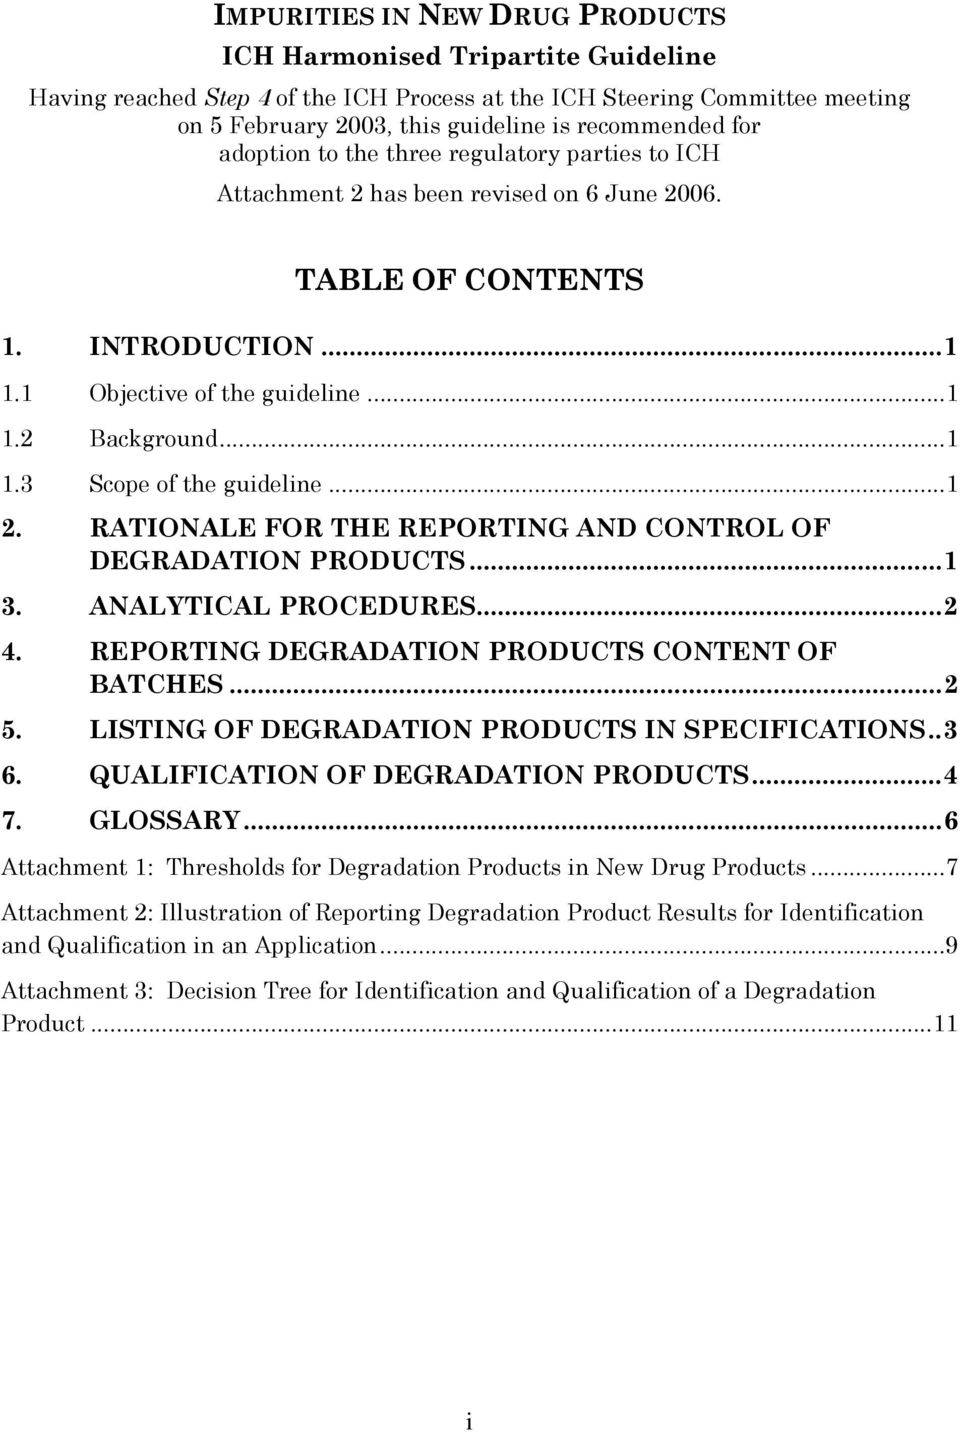 ..1 2. RATIONALE FOR THE REPORTING AND CONTROL OF DEGRADATION PRODUCTS...1 3. ANALYTICAL PROCEDURES...2 4. REPORTING DEGRADATION PRODUCTS CONTENT OF BATCHES...2 5.